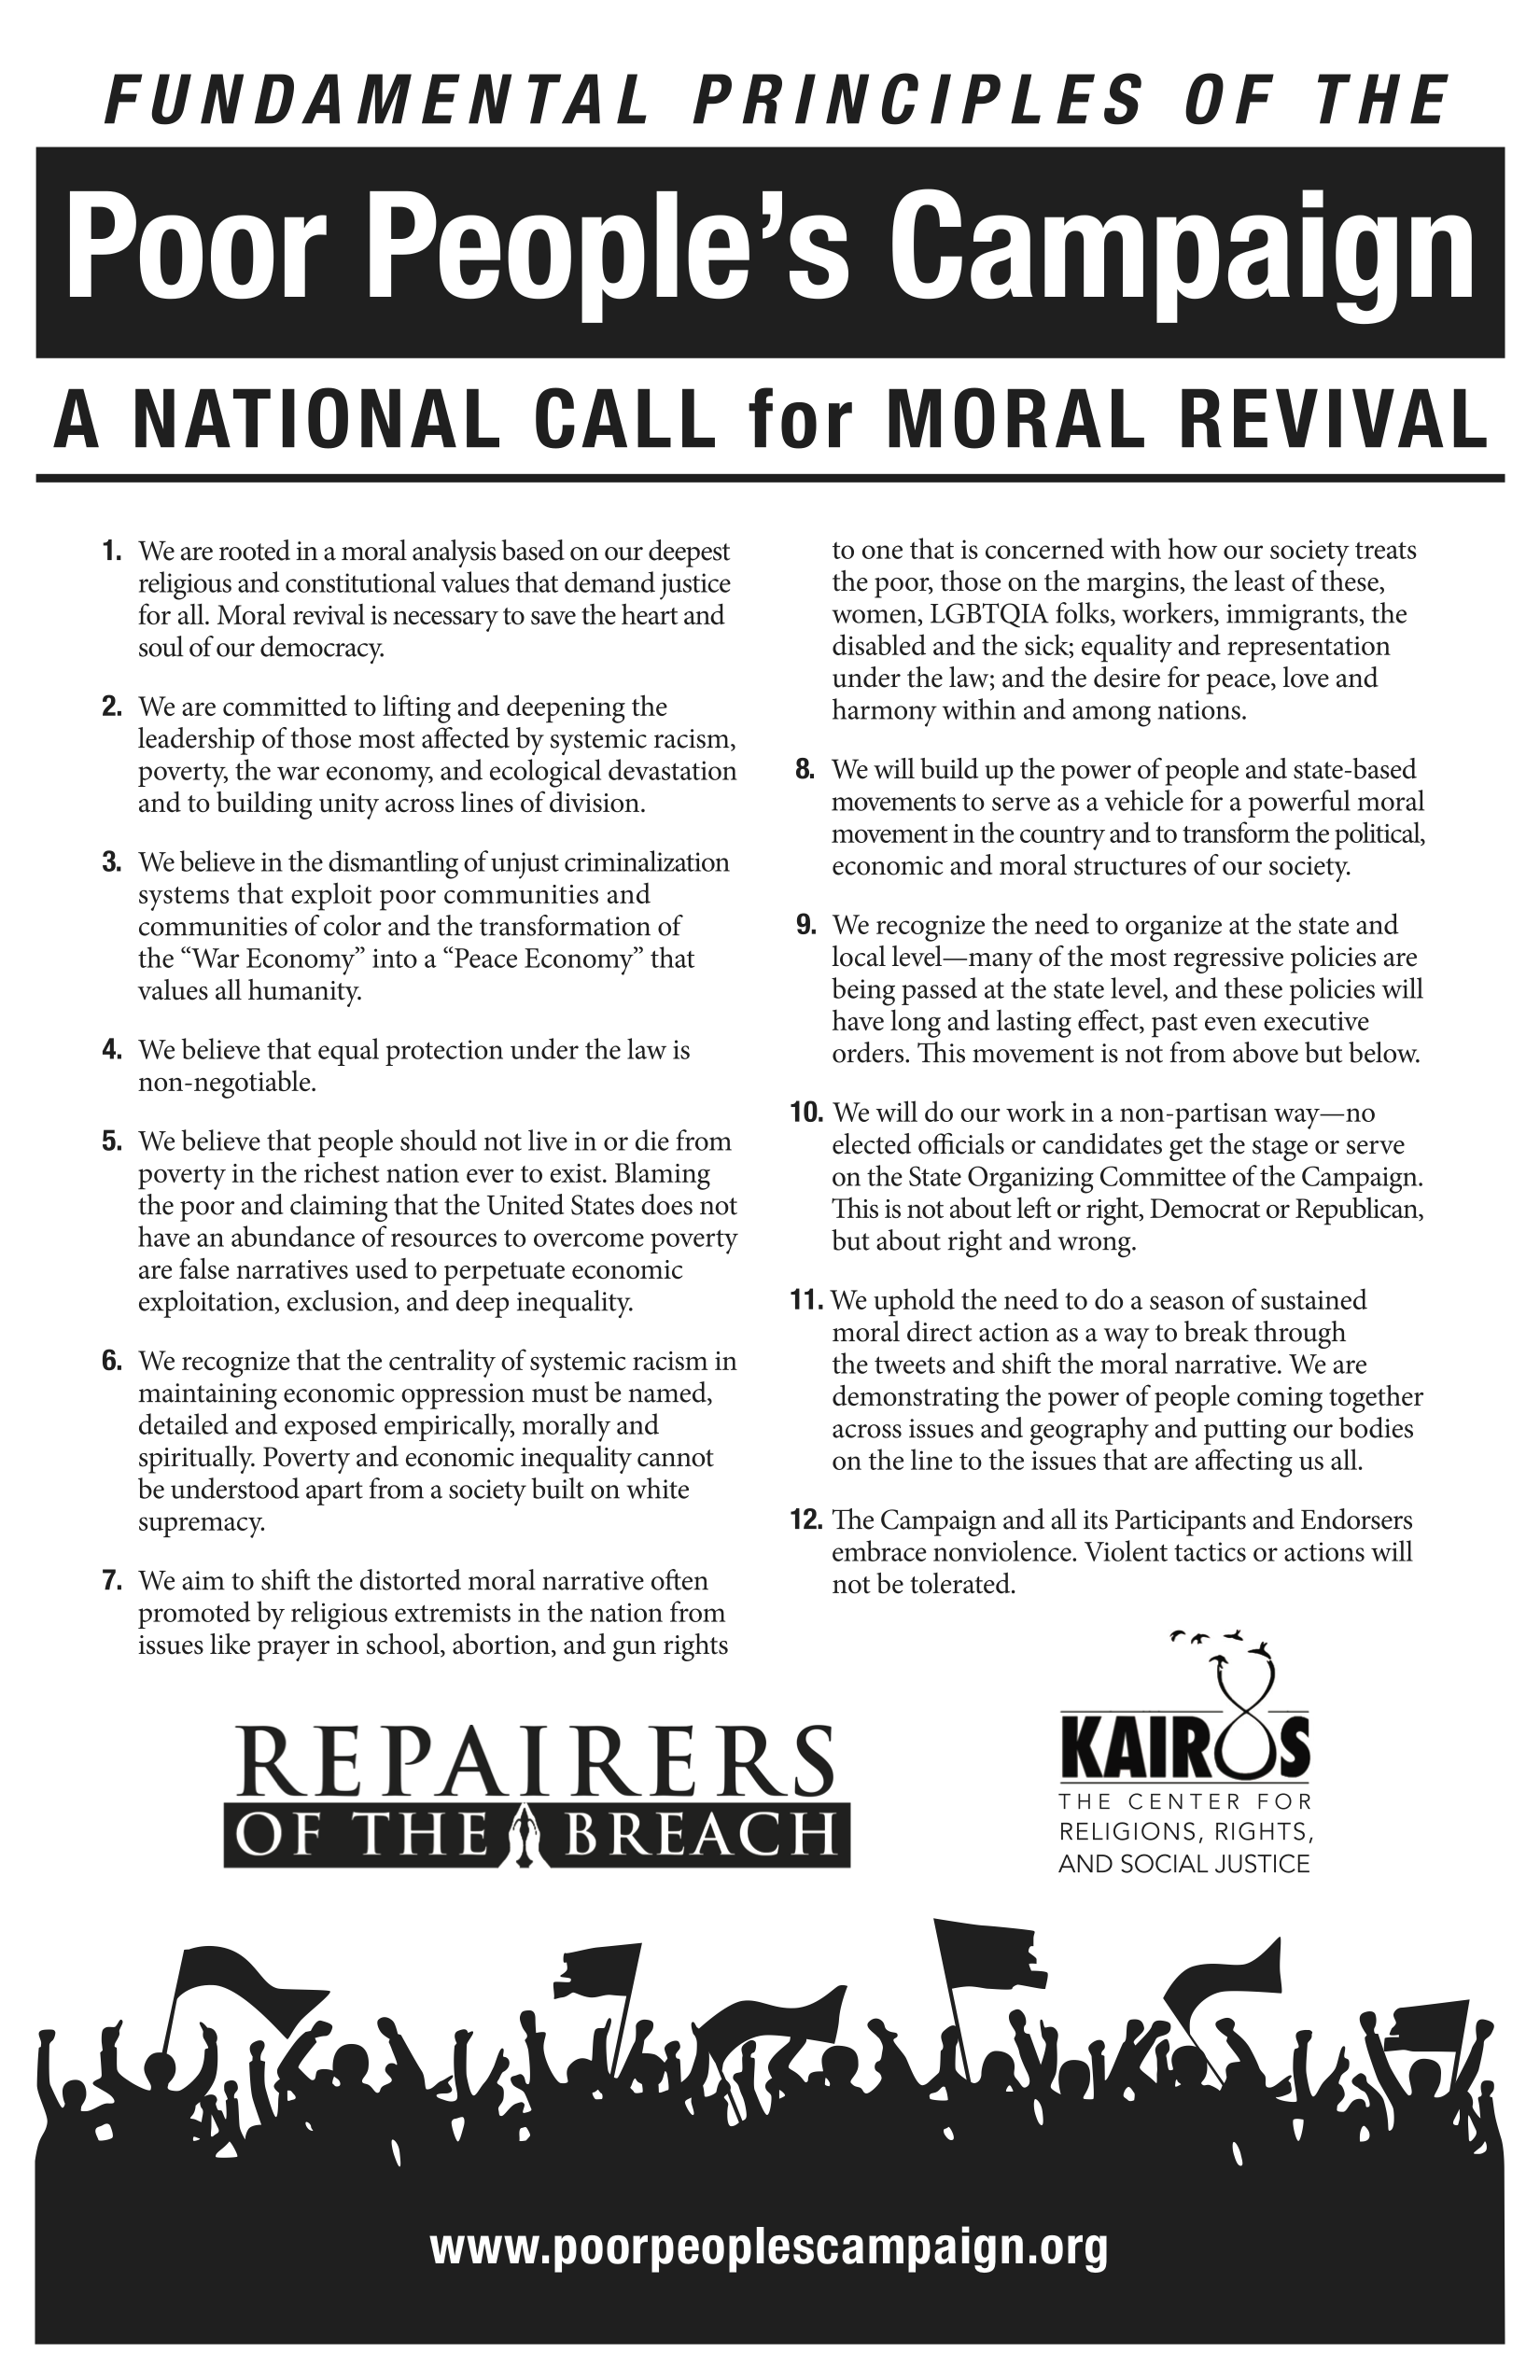 Fundamental Principles - A printable PDF of the Fundamental Principles of the Poor People's Campaign: A National Call for Moral Revival.En Español